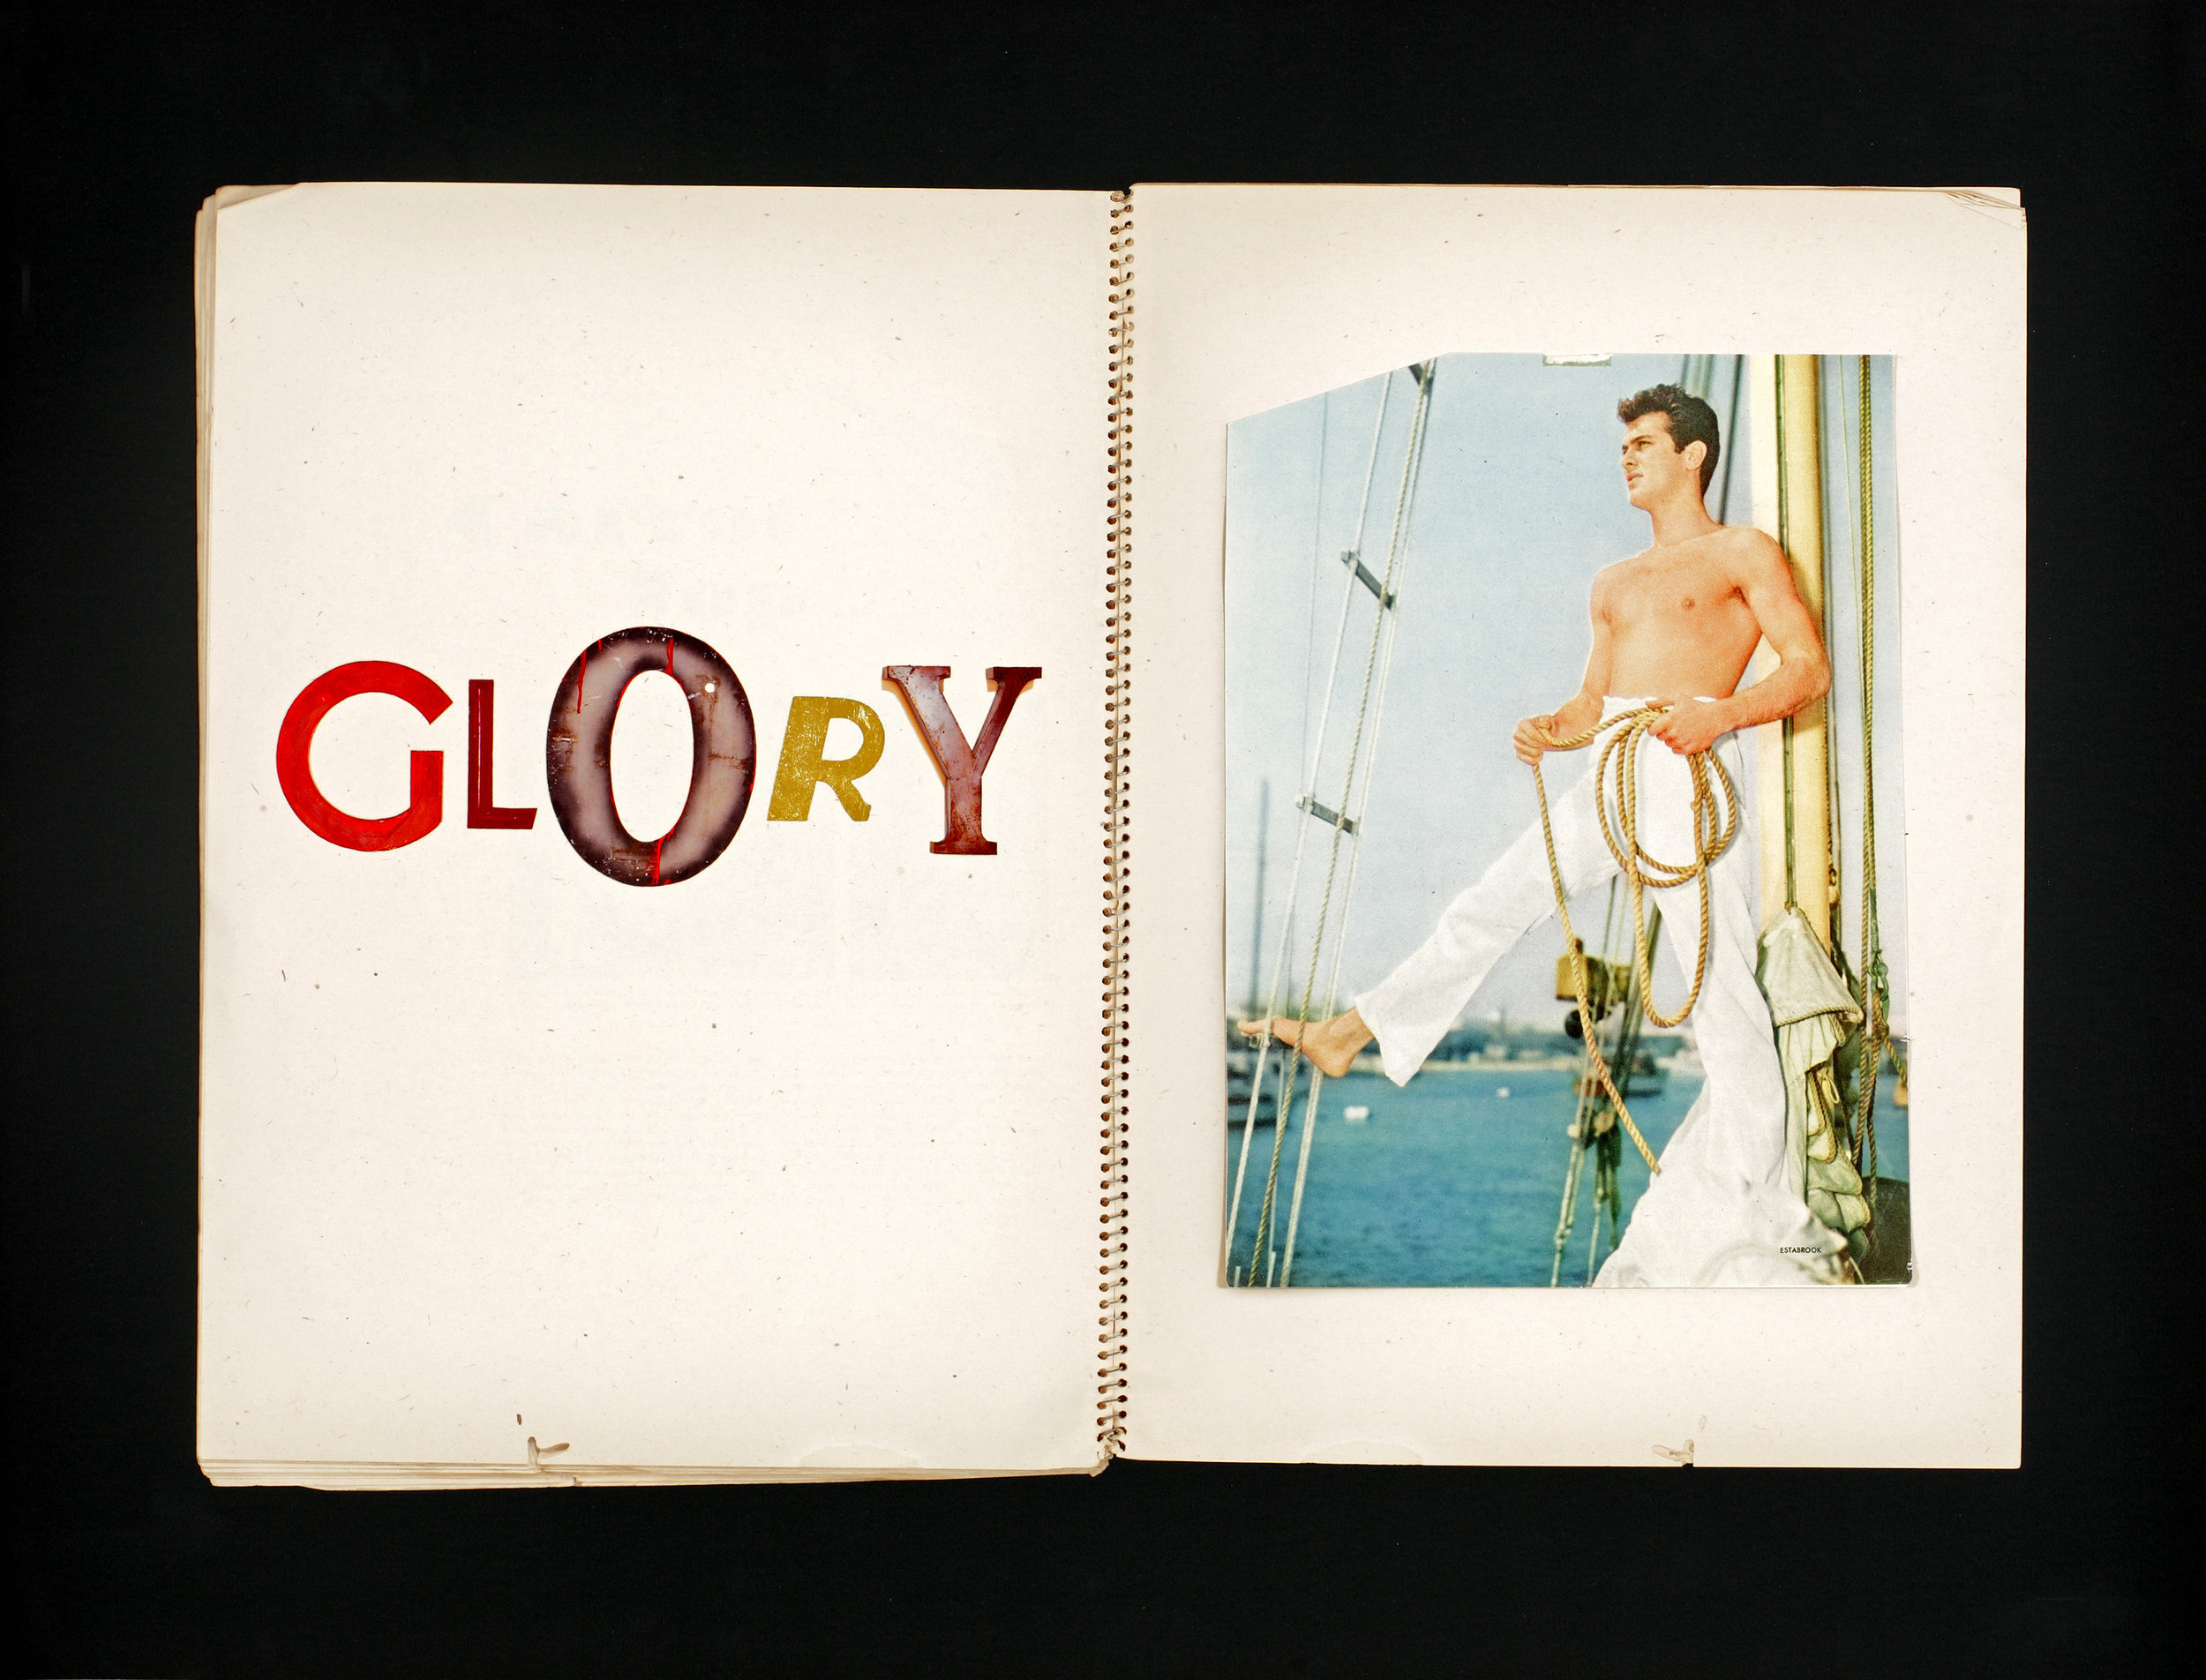 Jack Pierson, Twilight (GLORY), 2011 silk screen, archival print, collage edition of 21 95,6 x 104 cm - 37 5/8 x 40 7/8 inches (framed)